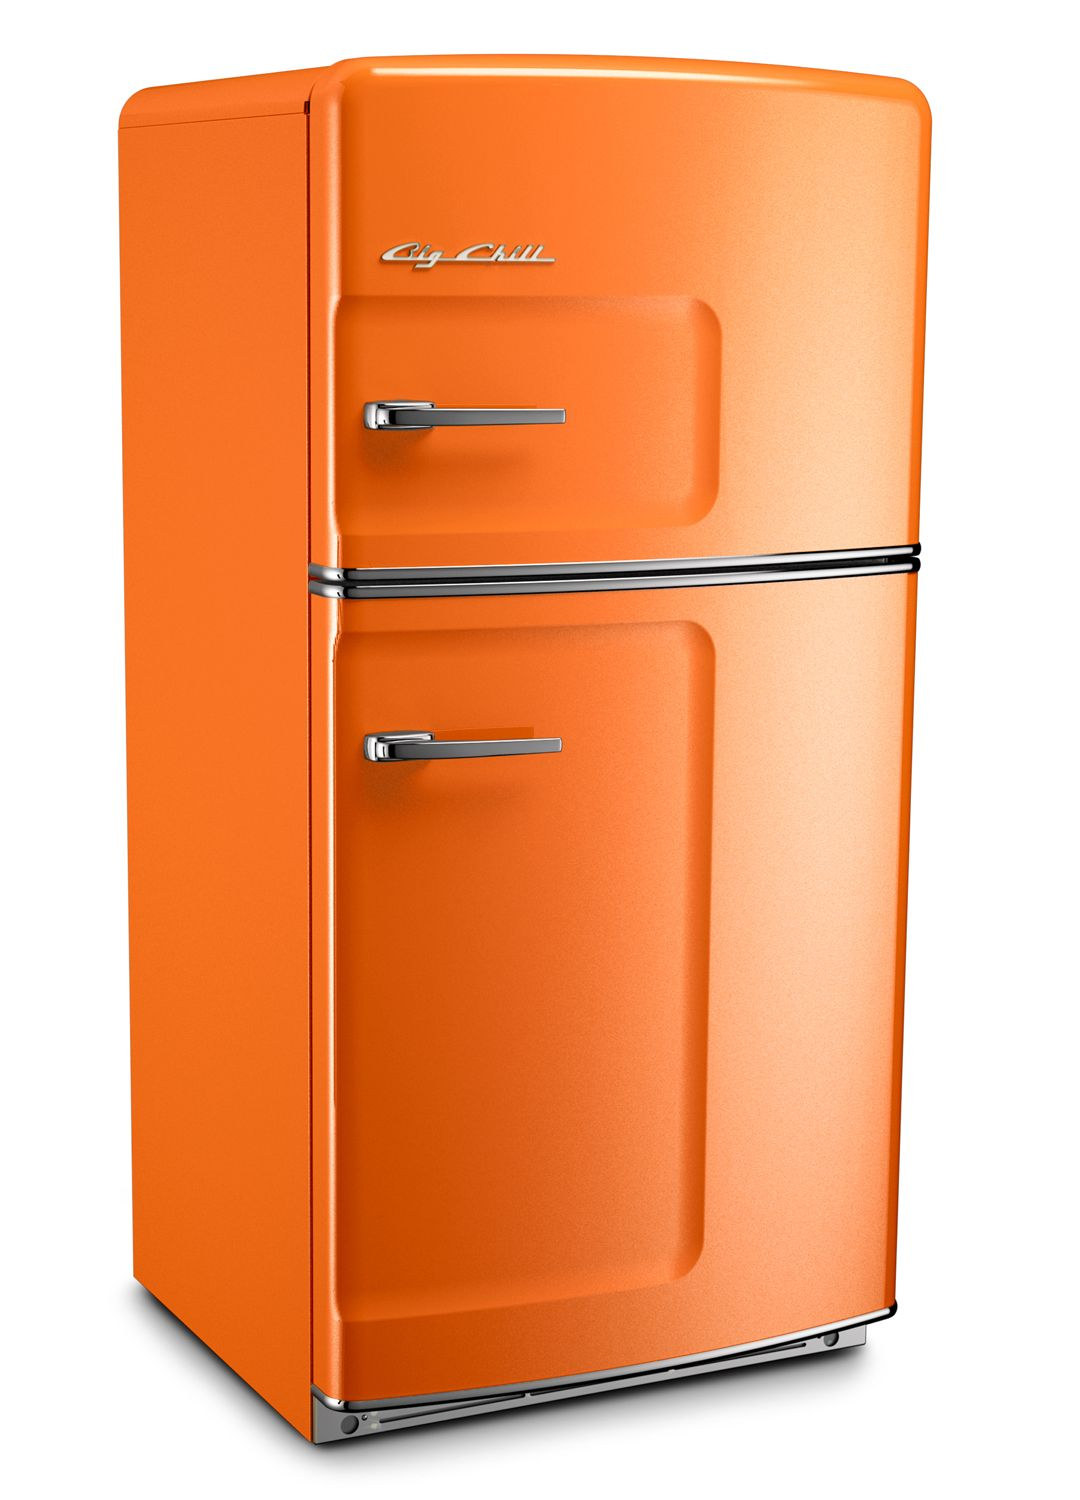 Retro Kühlschrank Orange Big Chill Retro Fridges Keeps Your Food Cold And Your Kitchen